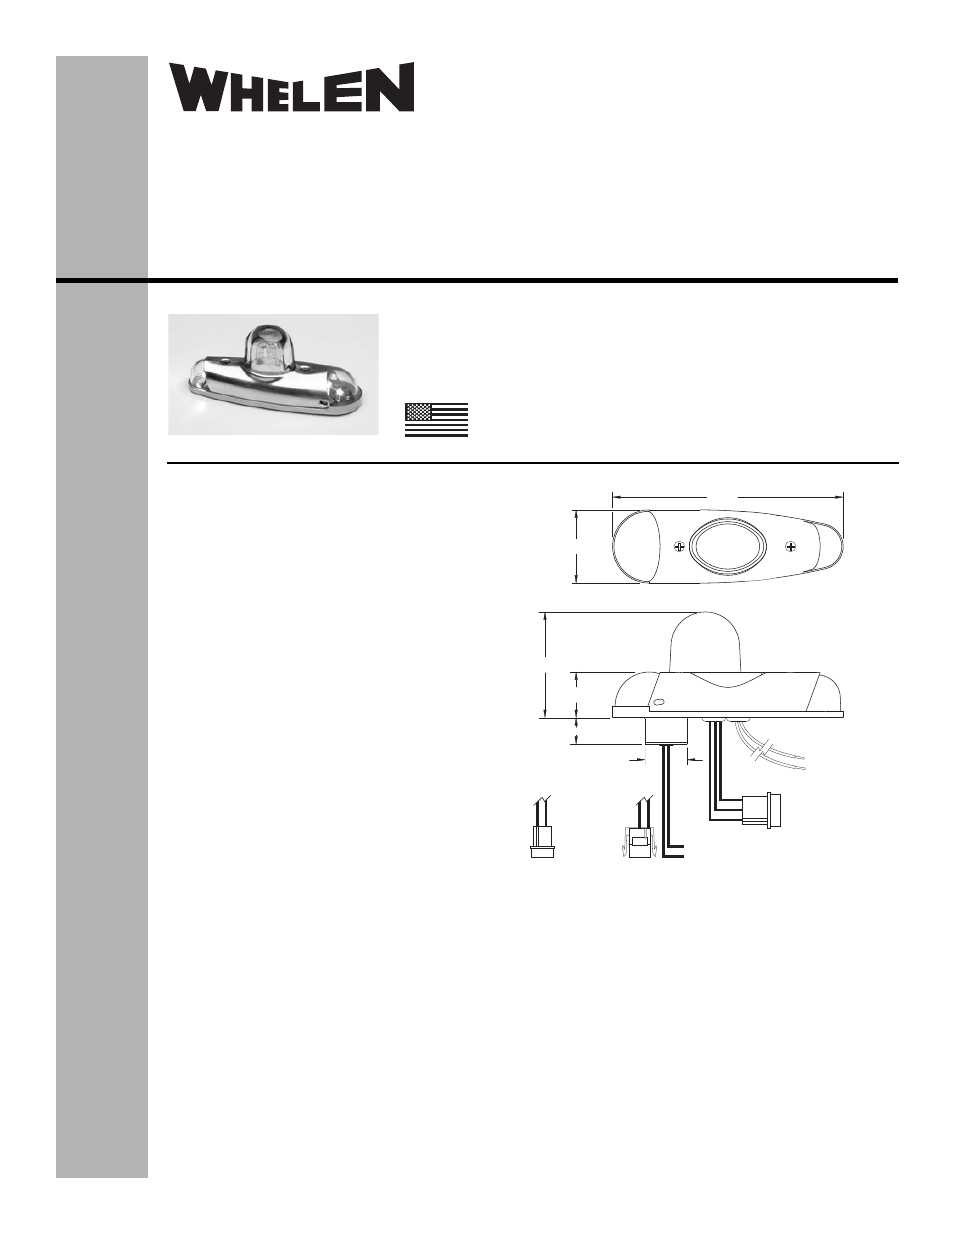 Whelen 90340 series User Manual | 2 pages | Also for ... on